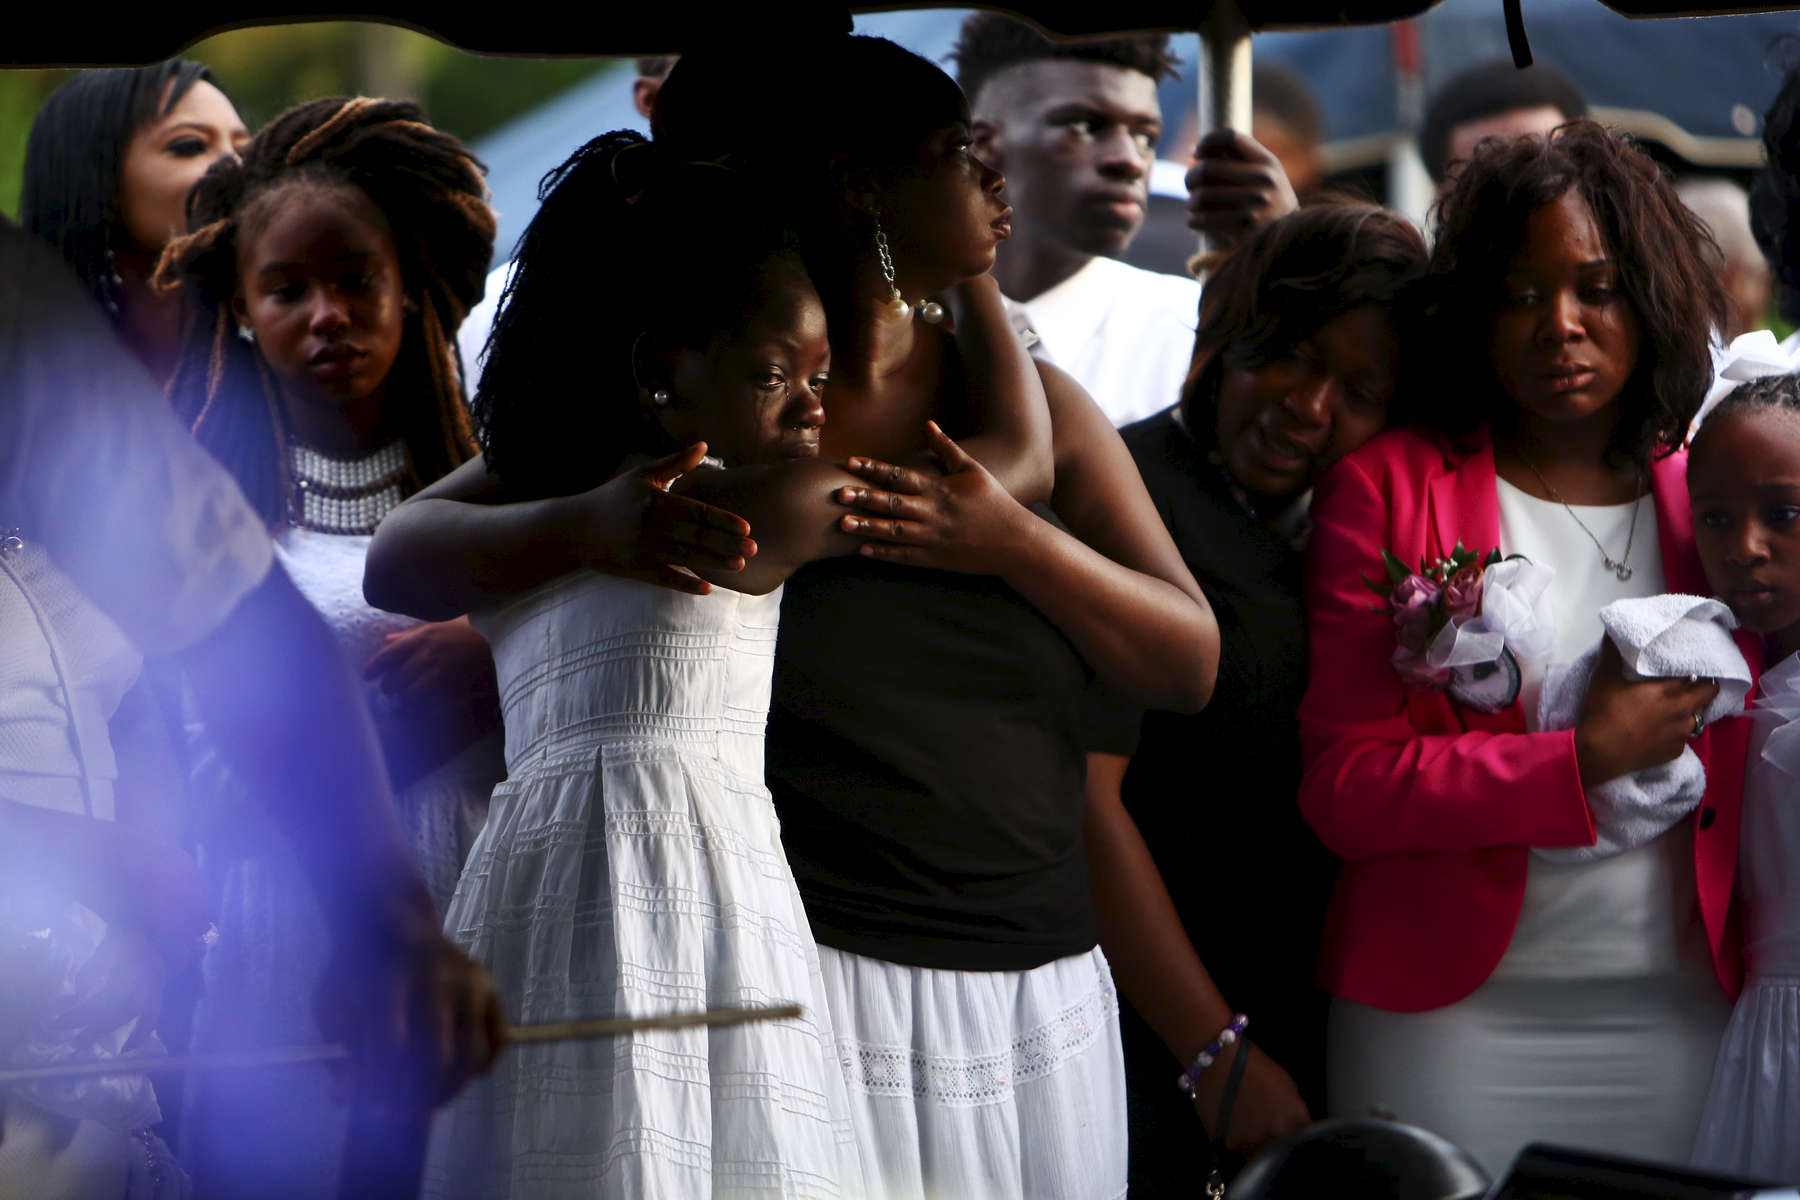 NAT ***Charleston, SC -- 06/27/2015 - A joint funeral service for Tywanza Sanders and his aunt Susie Jackson was held at Emanuel AME church in Charleston on Saturday, followed by a burial at the church cemetery.(Travis Dove for The New York Times)